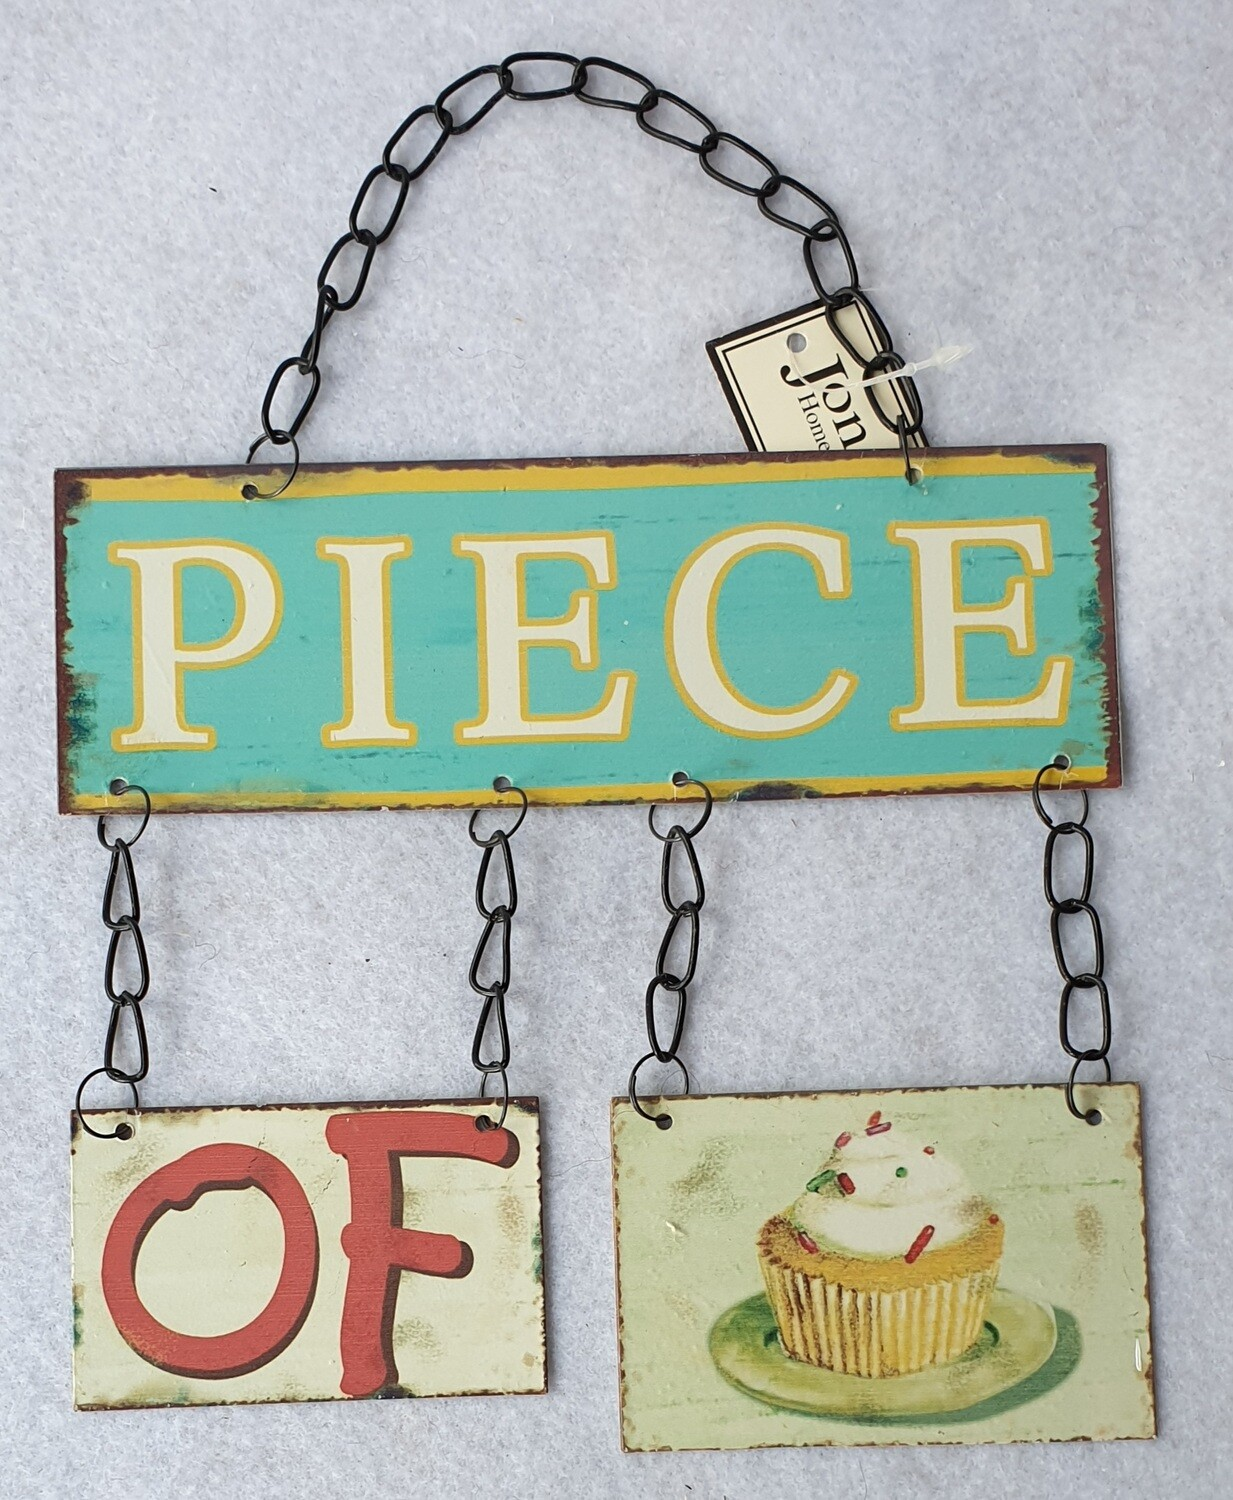 'Piece of cake' metal wall decoration.